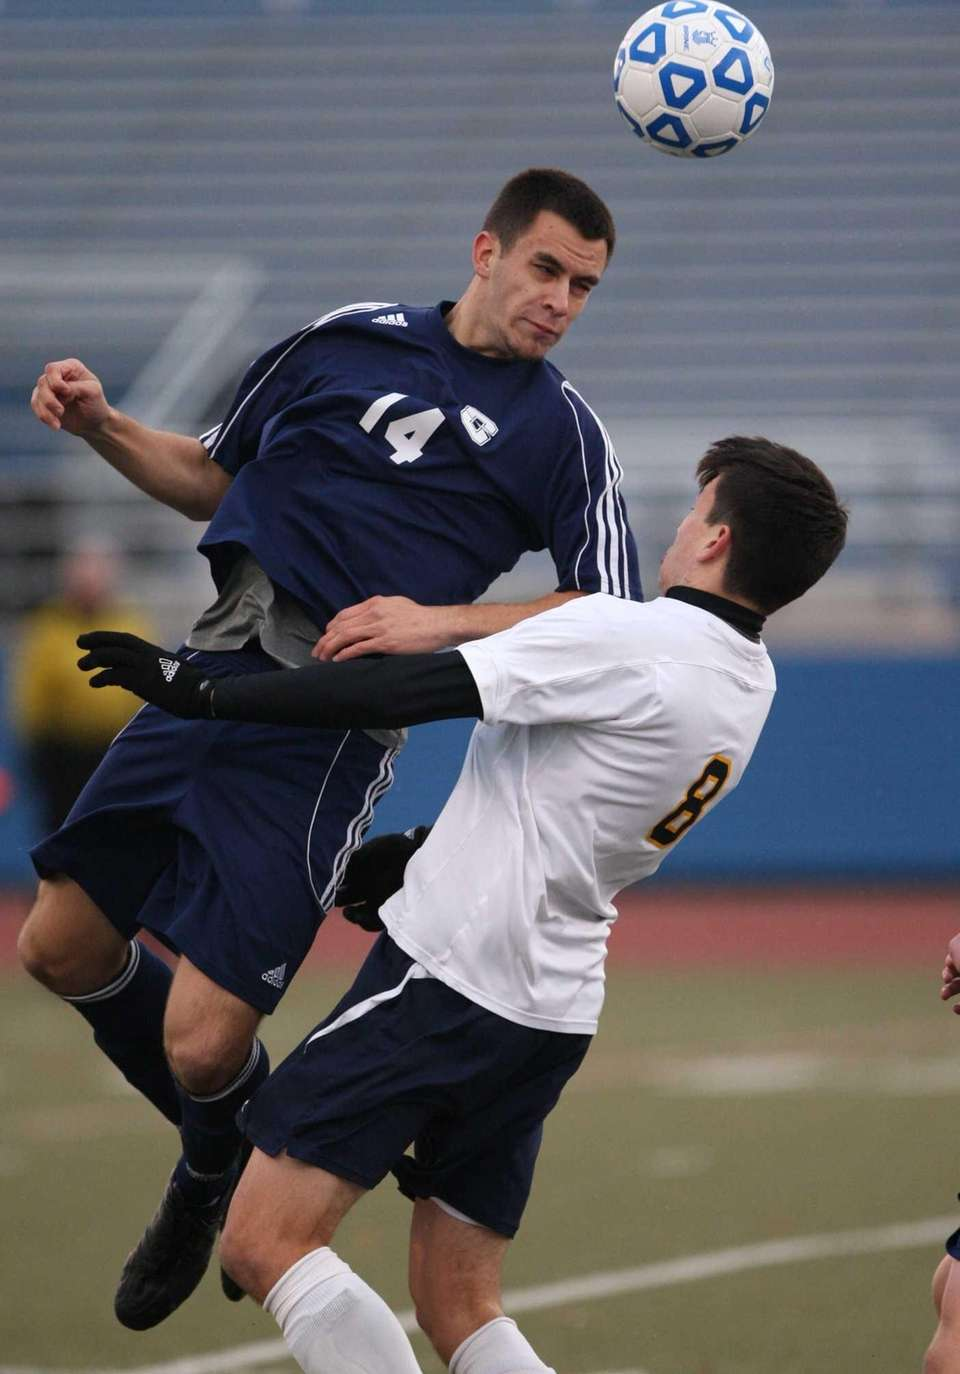 Smithtown West's Matthew Aprile goes for the ball